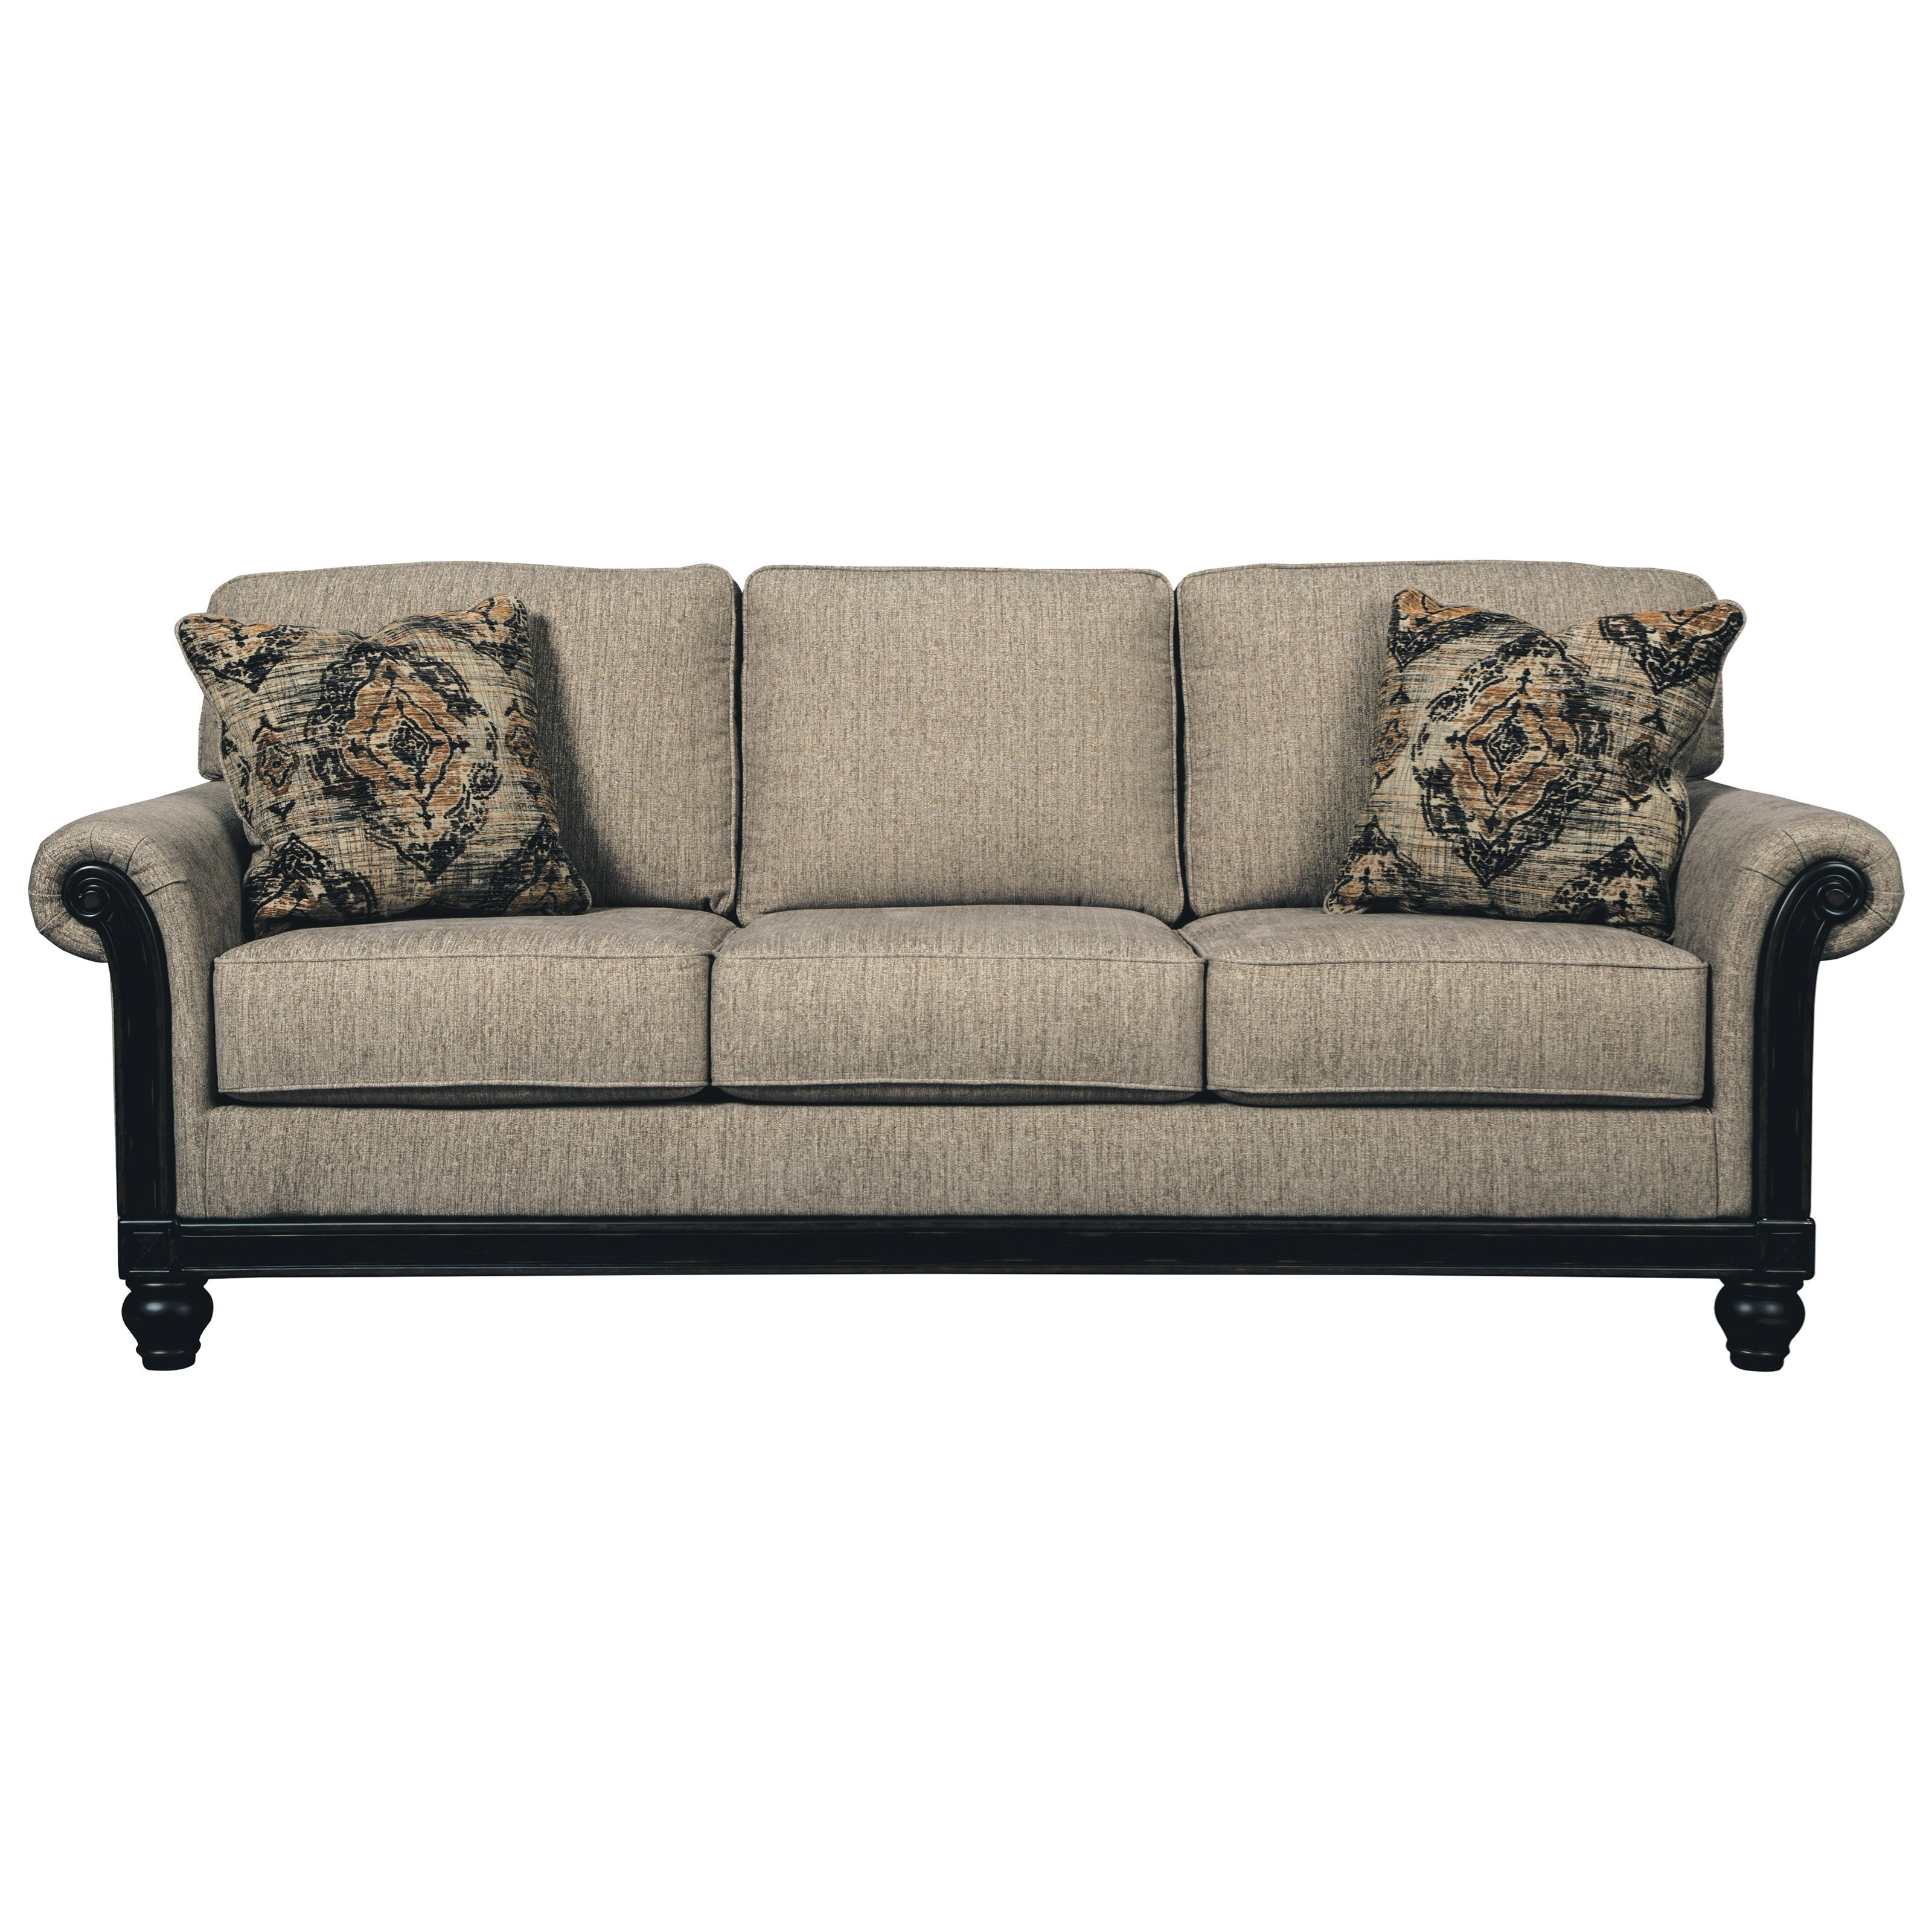 Signature Design by Ashley Blackwood Sofa - Item Number: 3350338